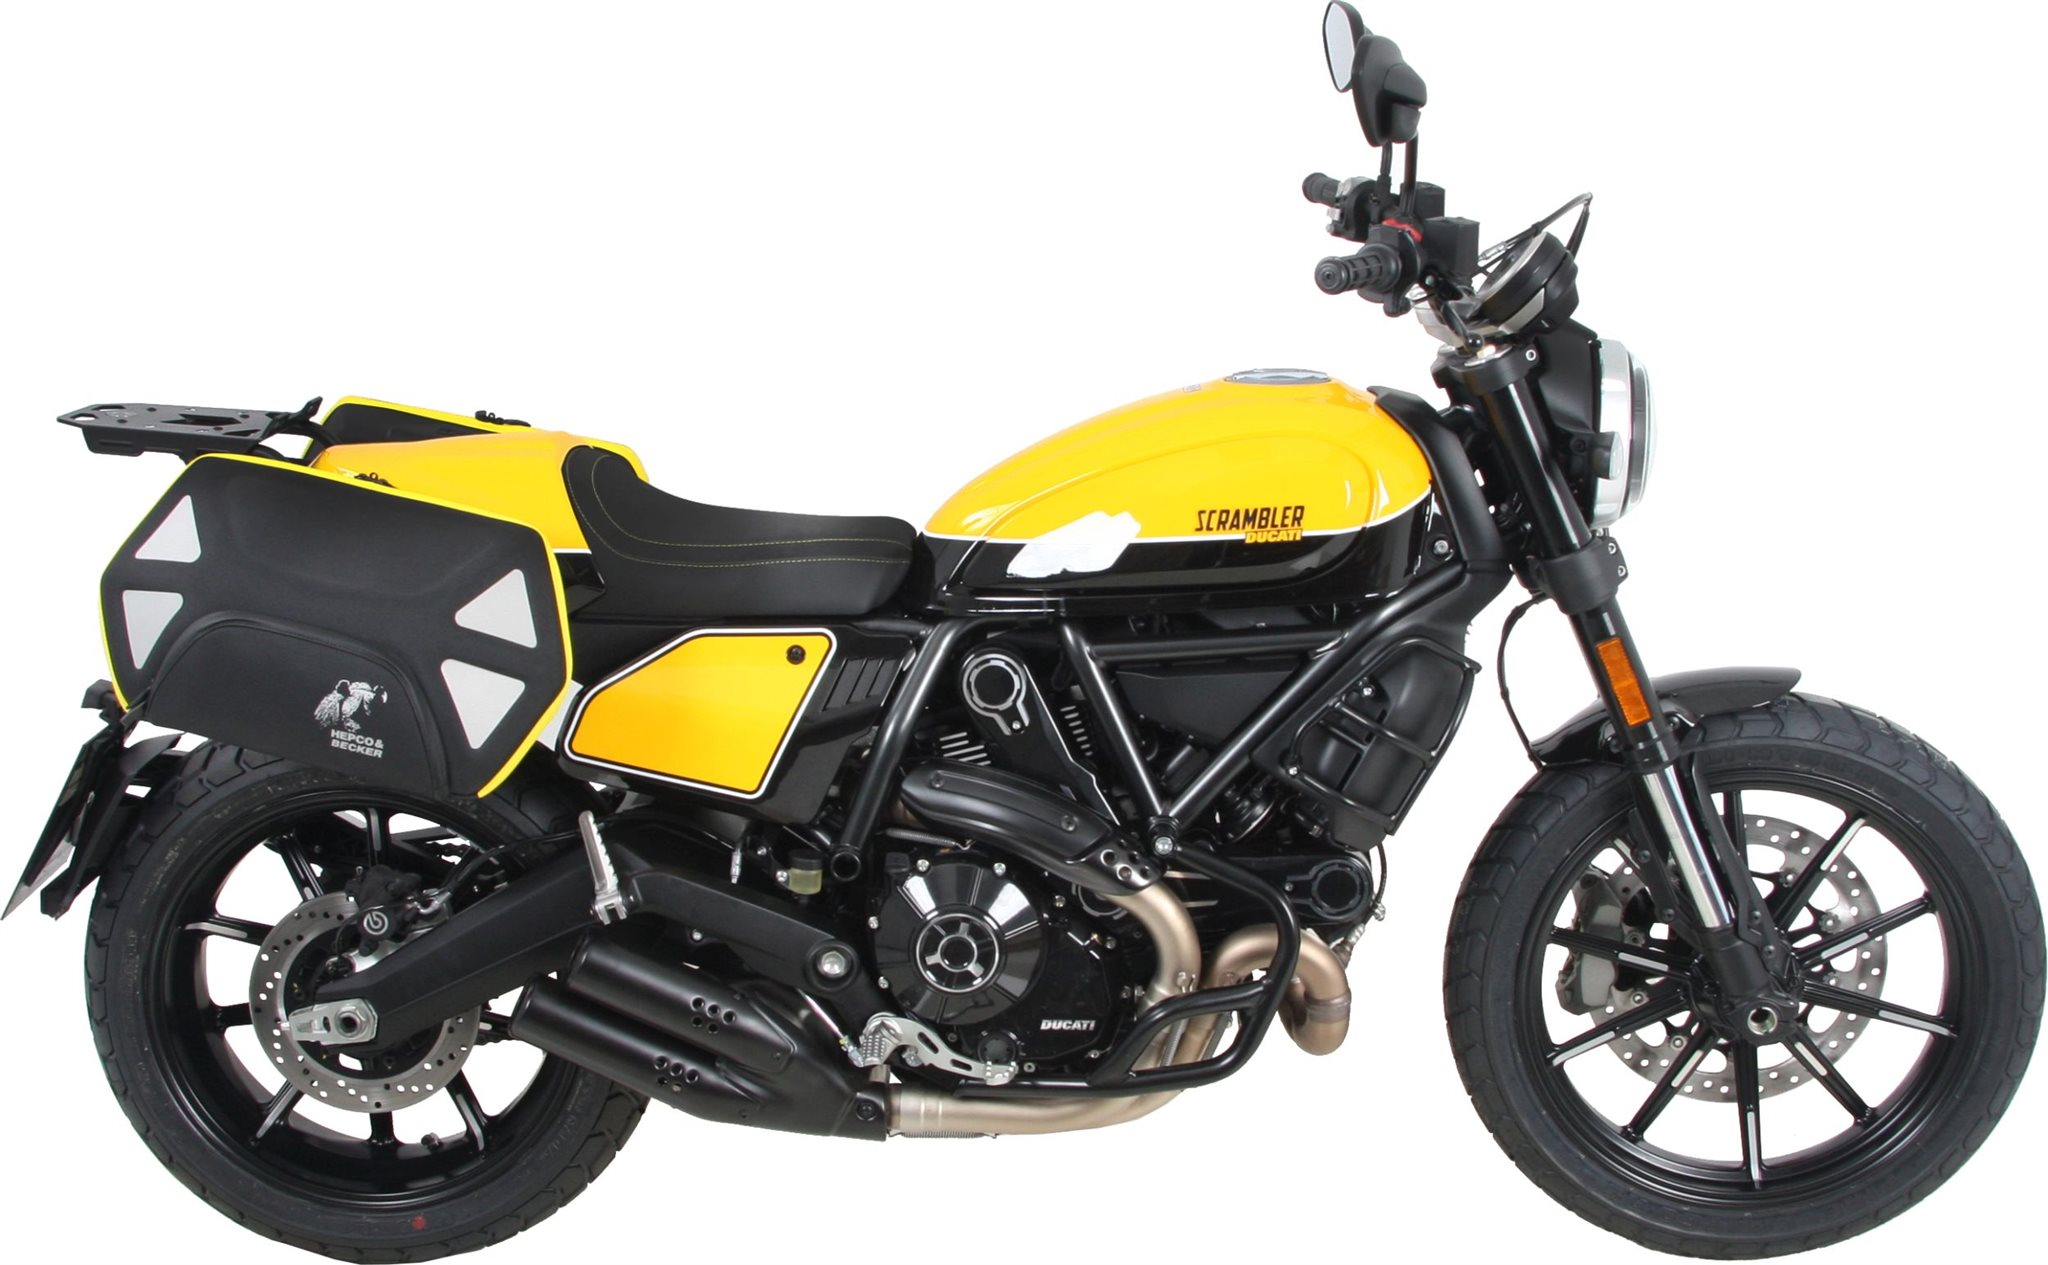 hepco becker zubeh r f r die ducati scrambler 800 bj 19. Black Bedroom Furniture Sets. Home Design Ideas